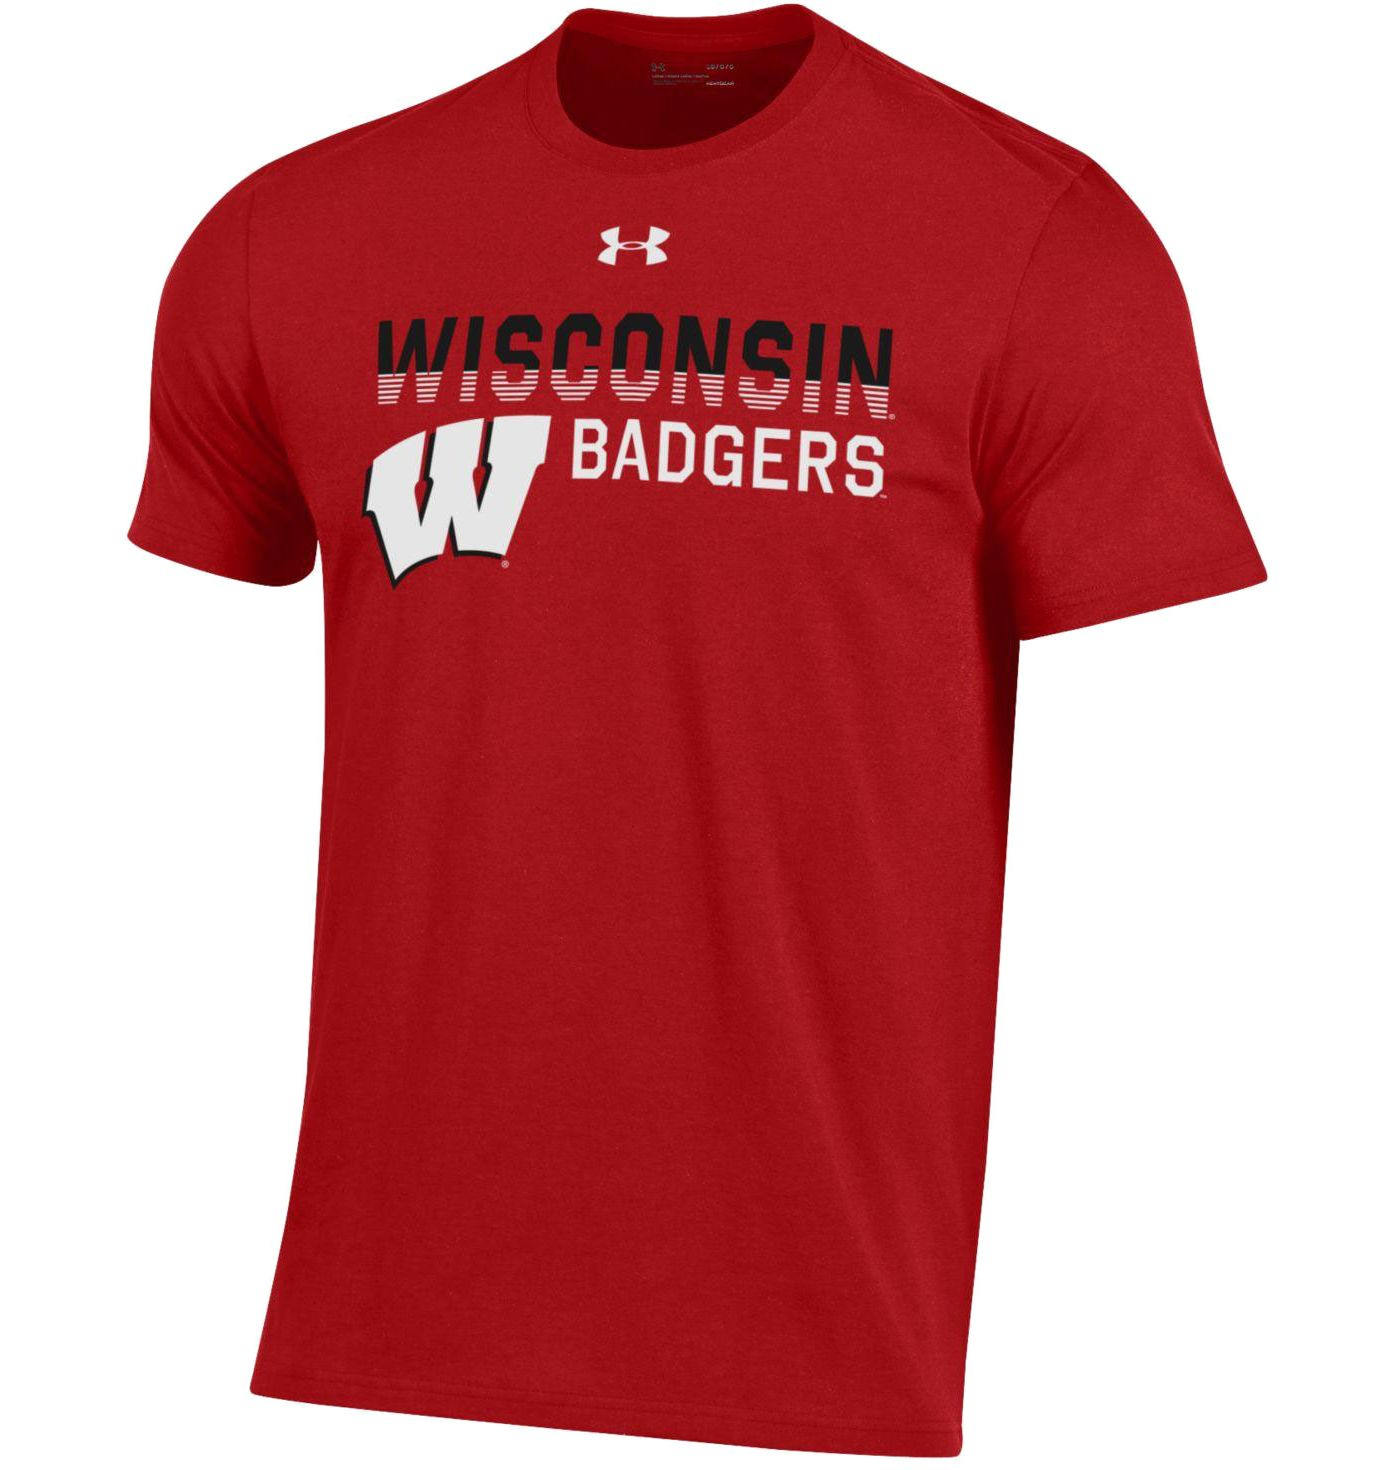 Under Armour Men's Wisconsin Badgers Red Performance Cotton T-Shirt